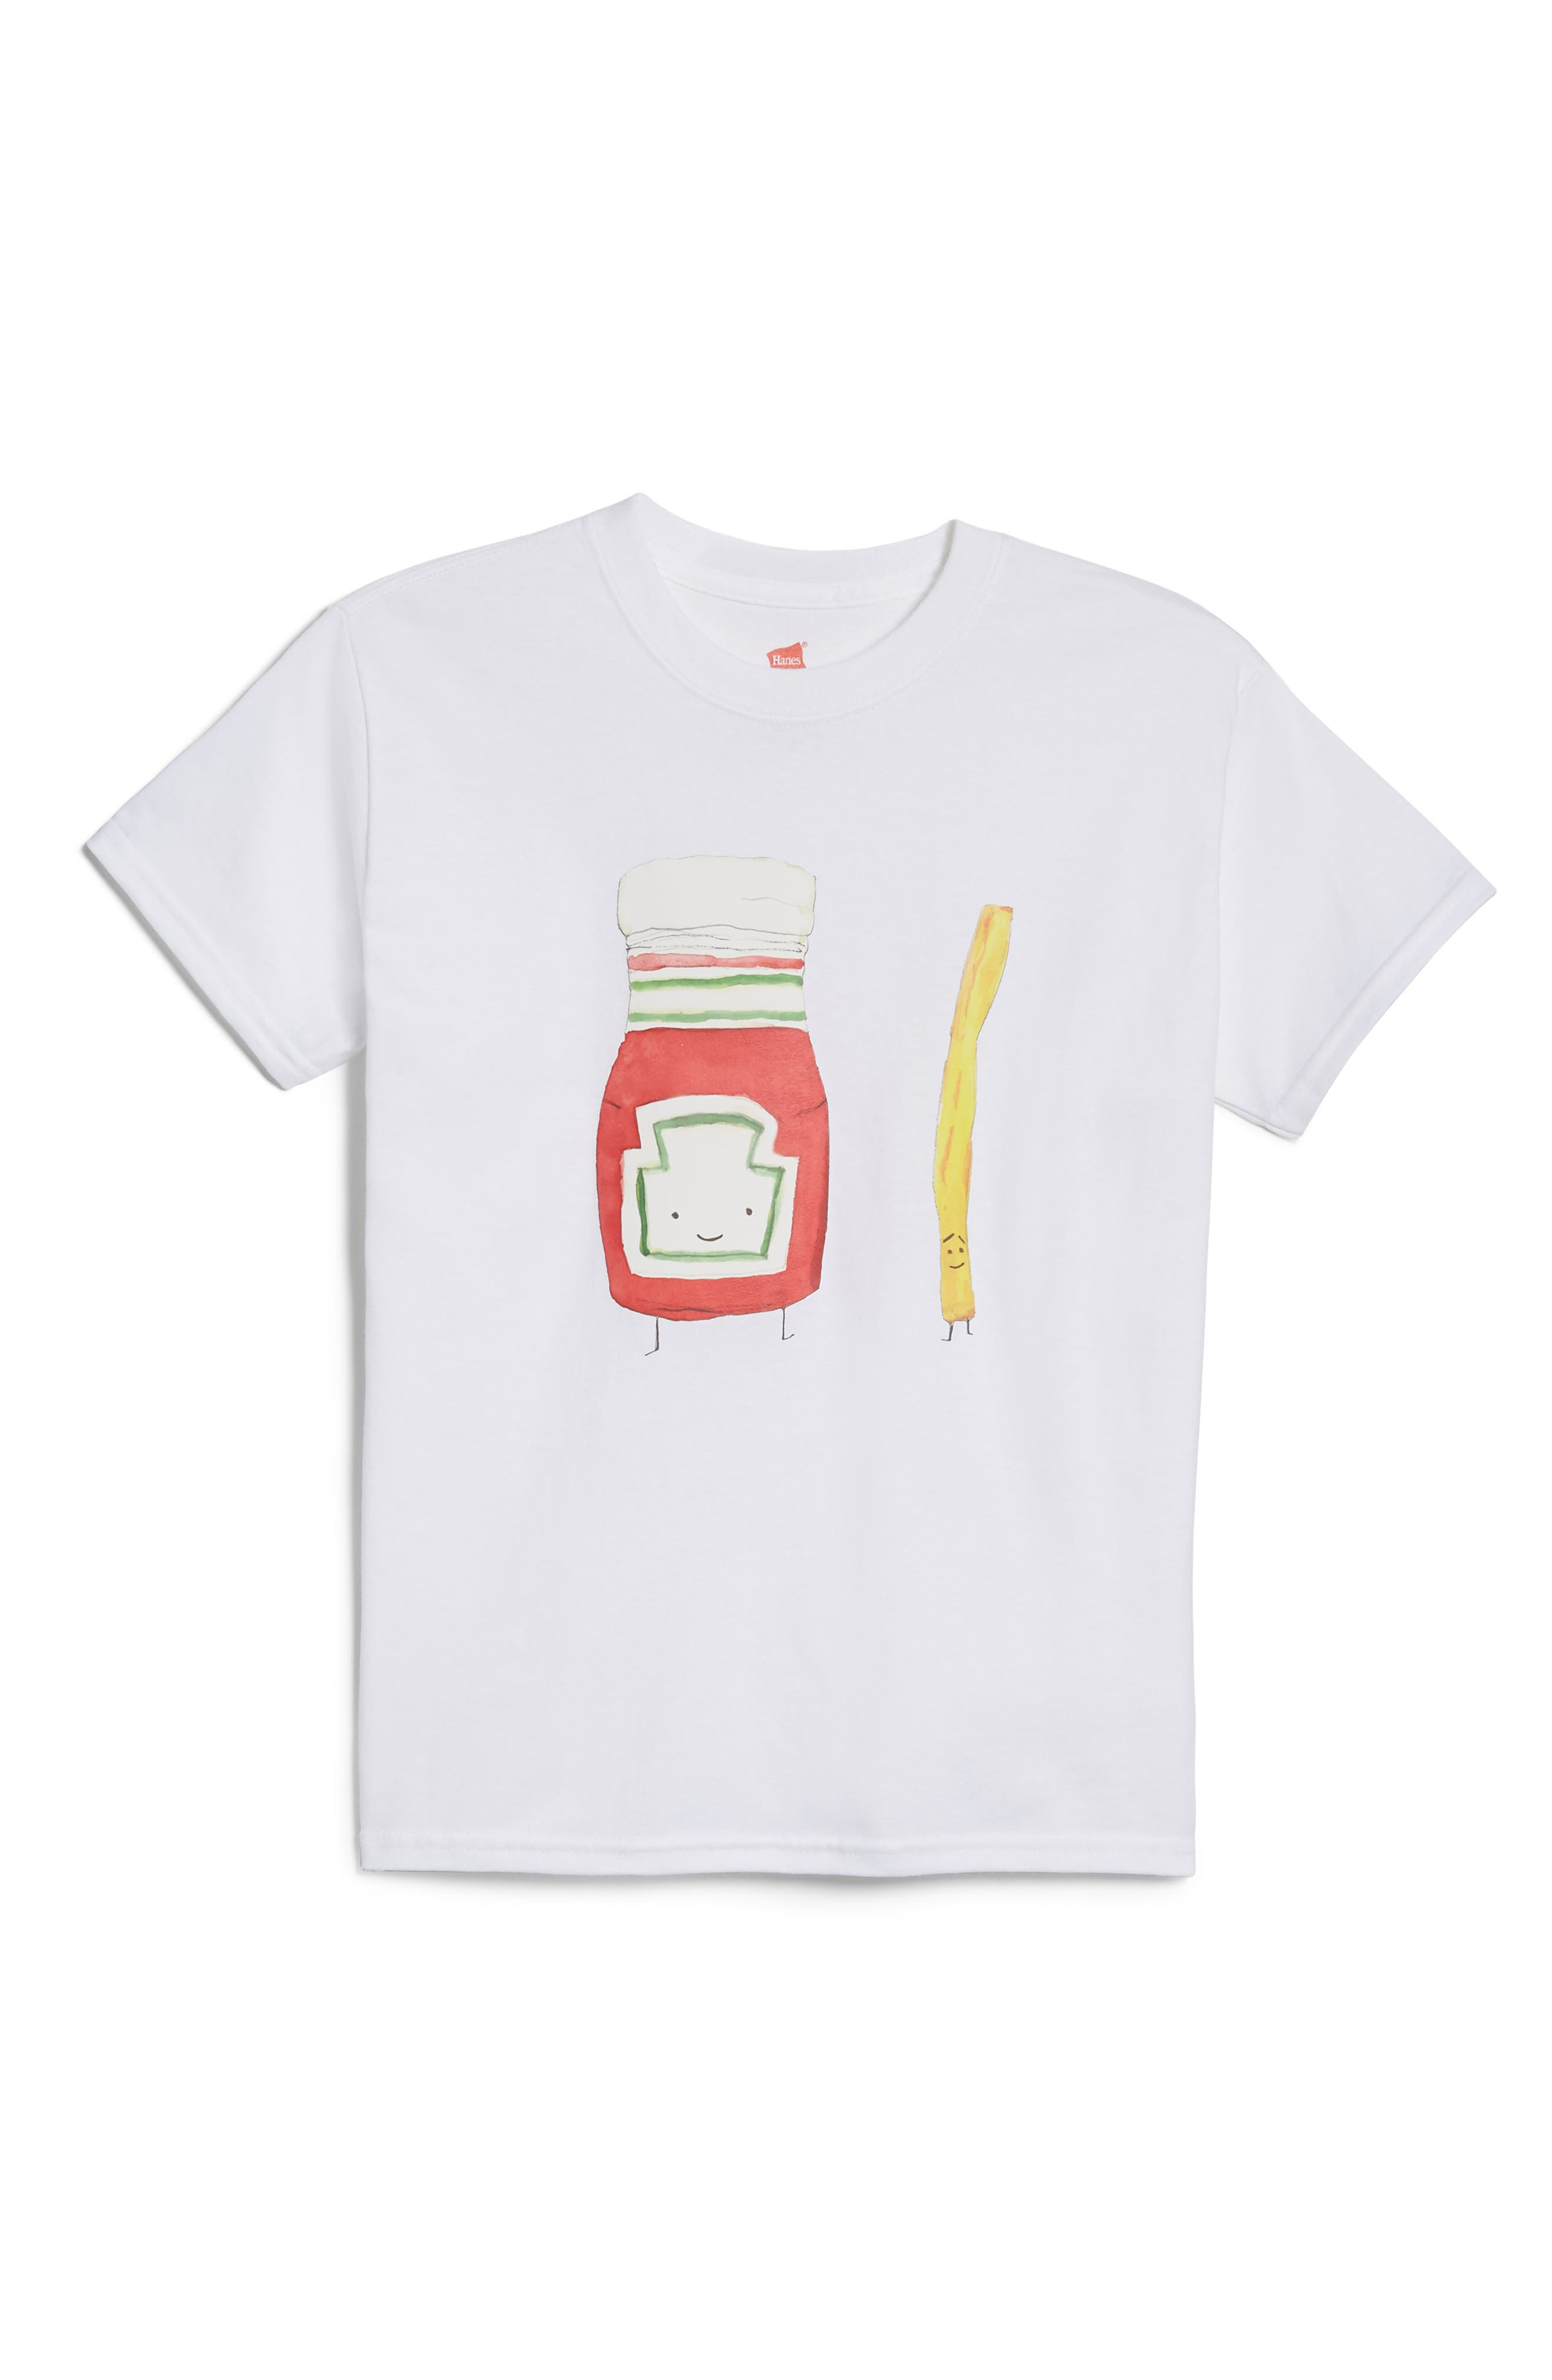 Alessandra Olanow Ketchup & French Fry T-Shirt (Toddler, Little Kid & Big Kid)